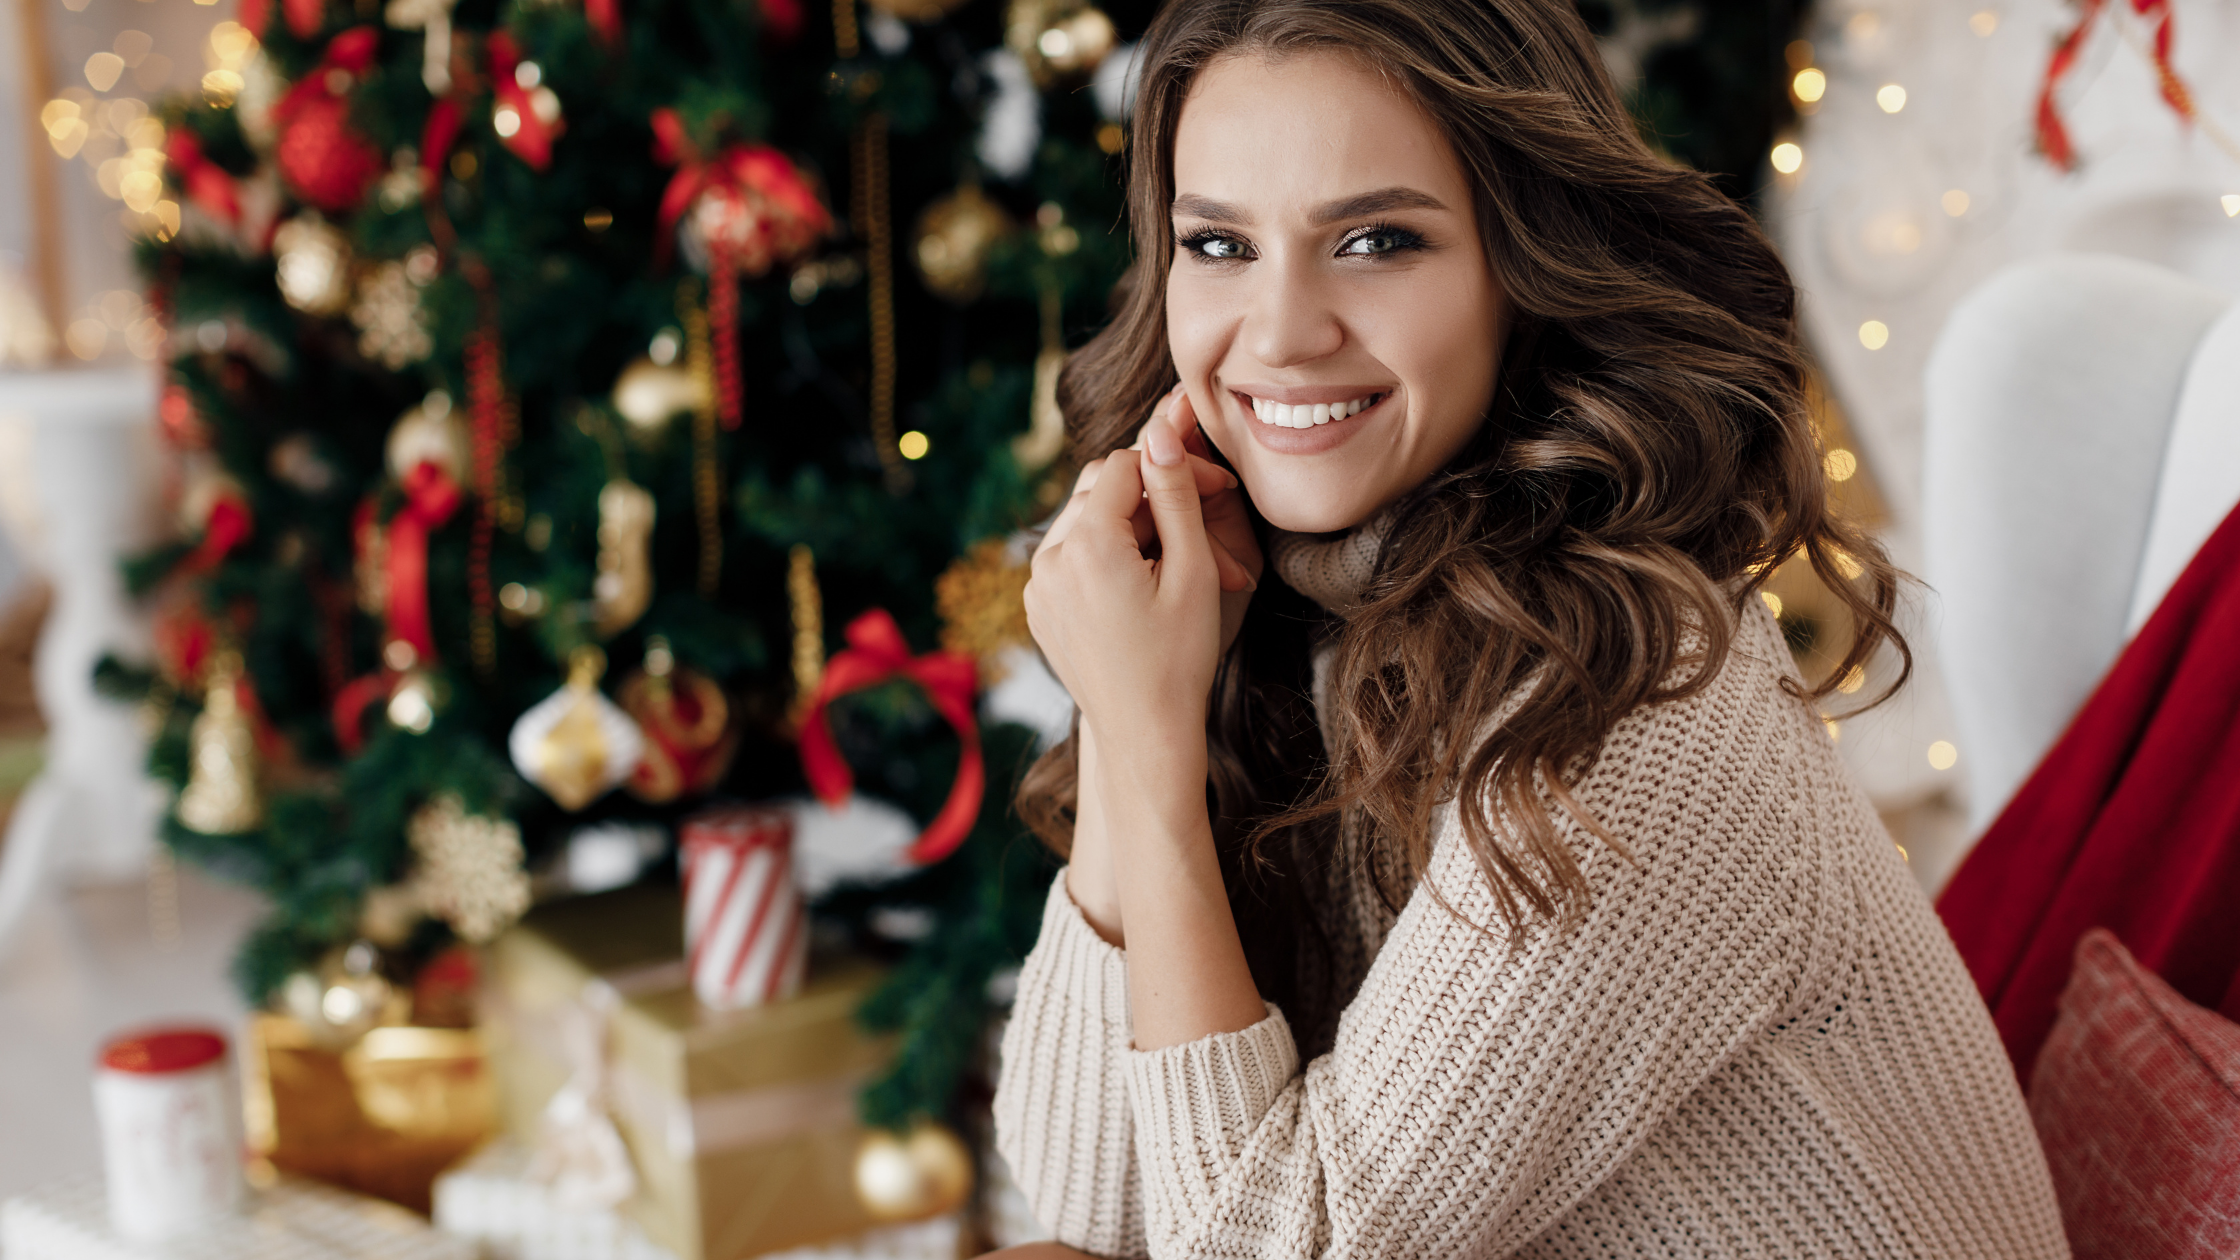 Festive Season Skincare Tips